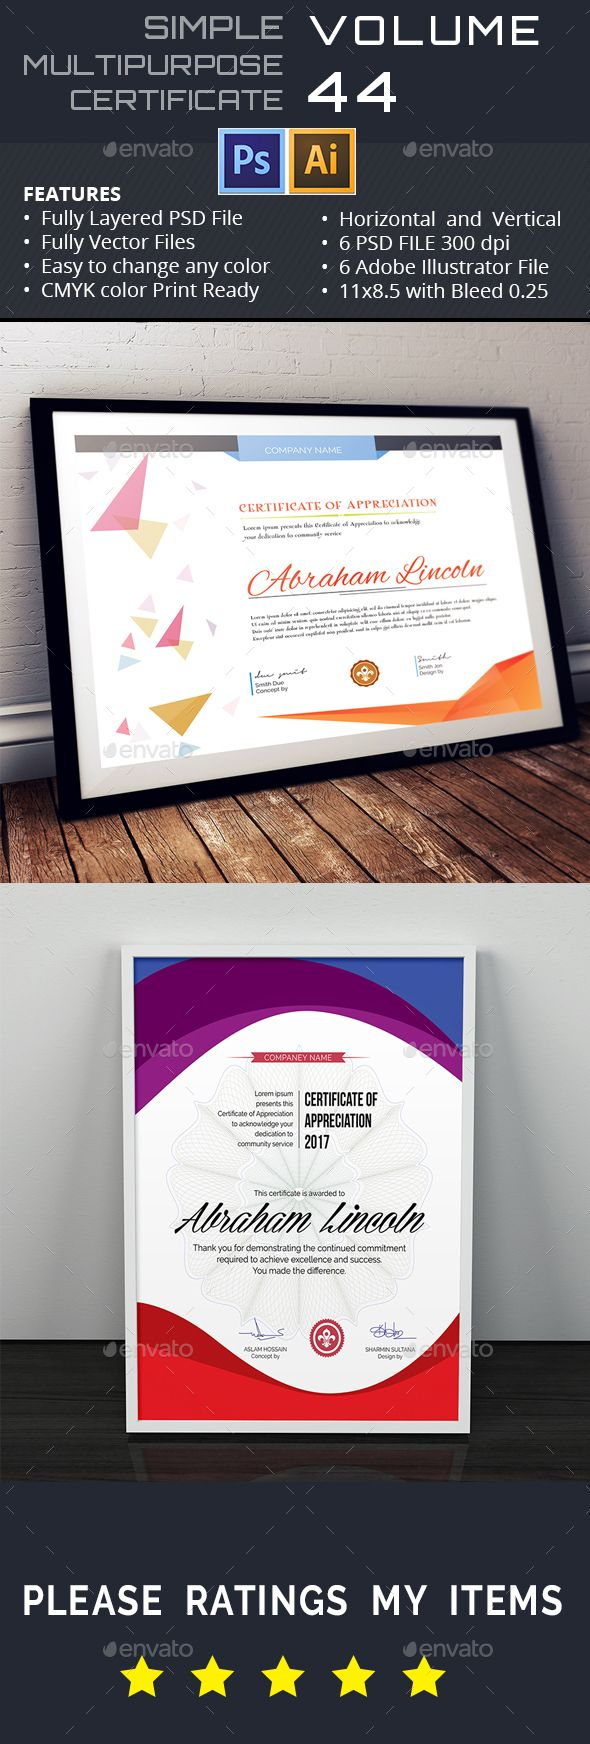 Easy simple multipurpose certificate gd049 simple certificate easy simple multipurpose certificate gd049 simple certificate templates and templates yadclub Images